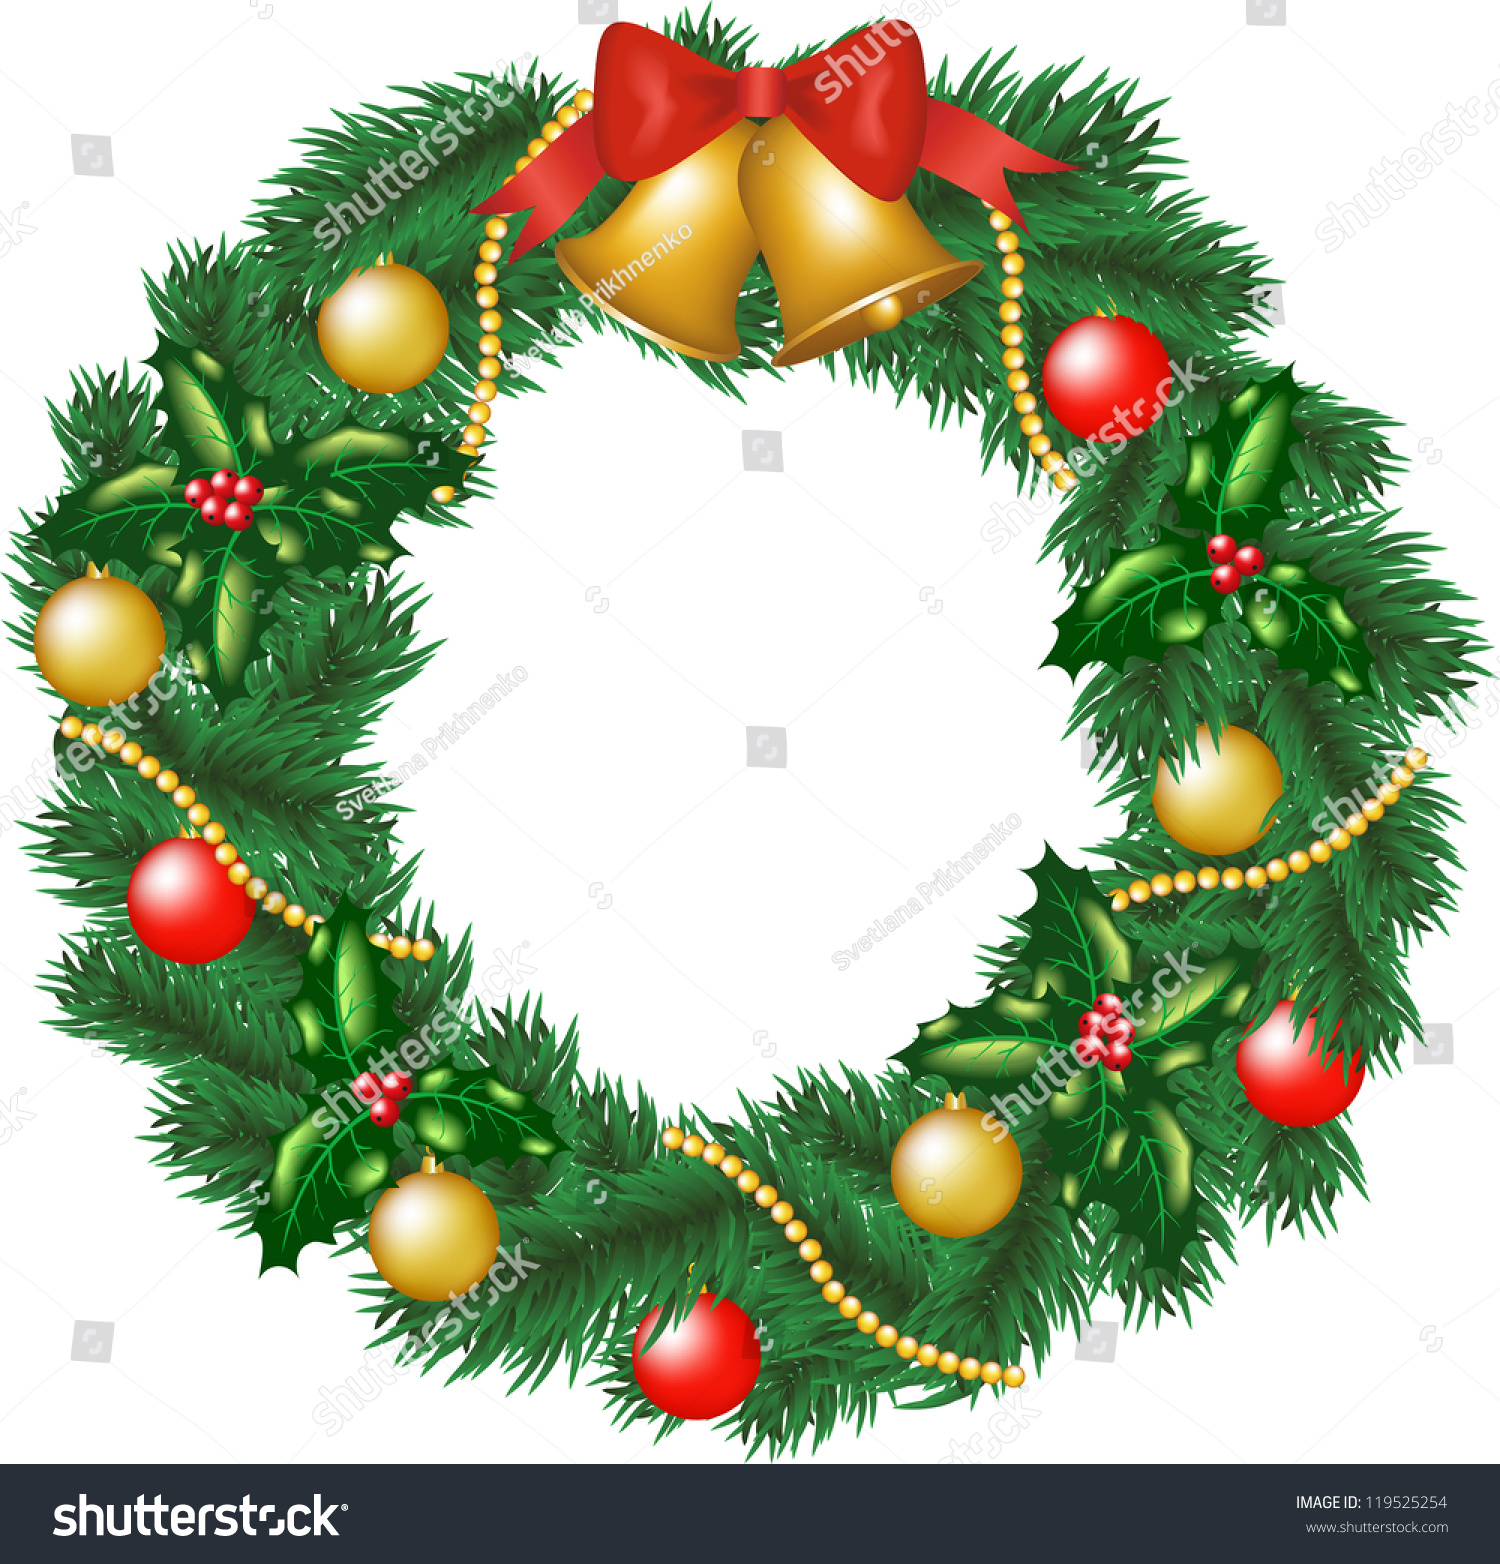 Christmas garland bells bauble holly berry stock vector